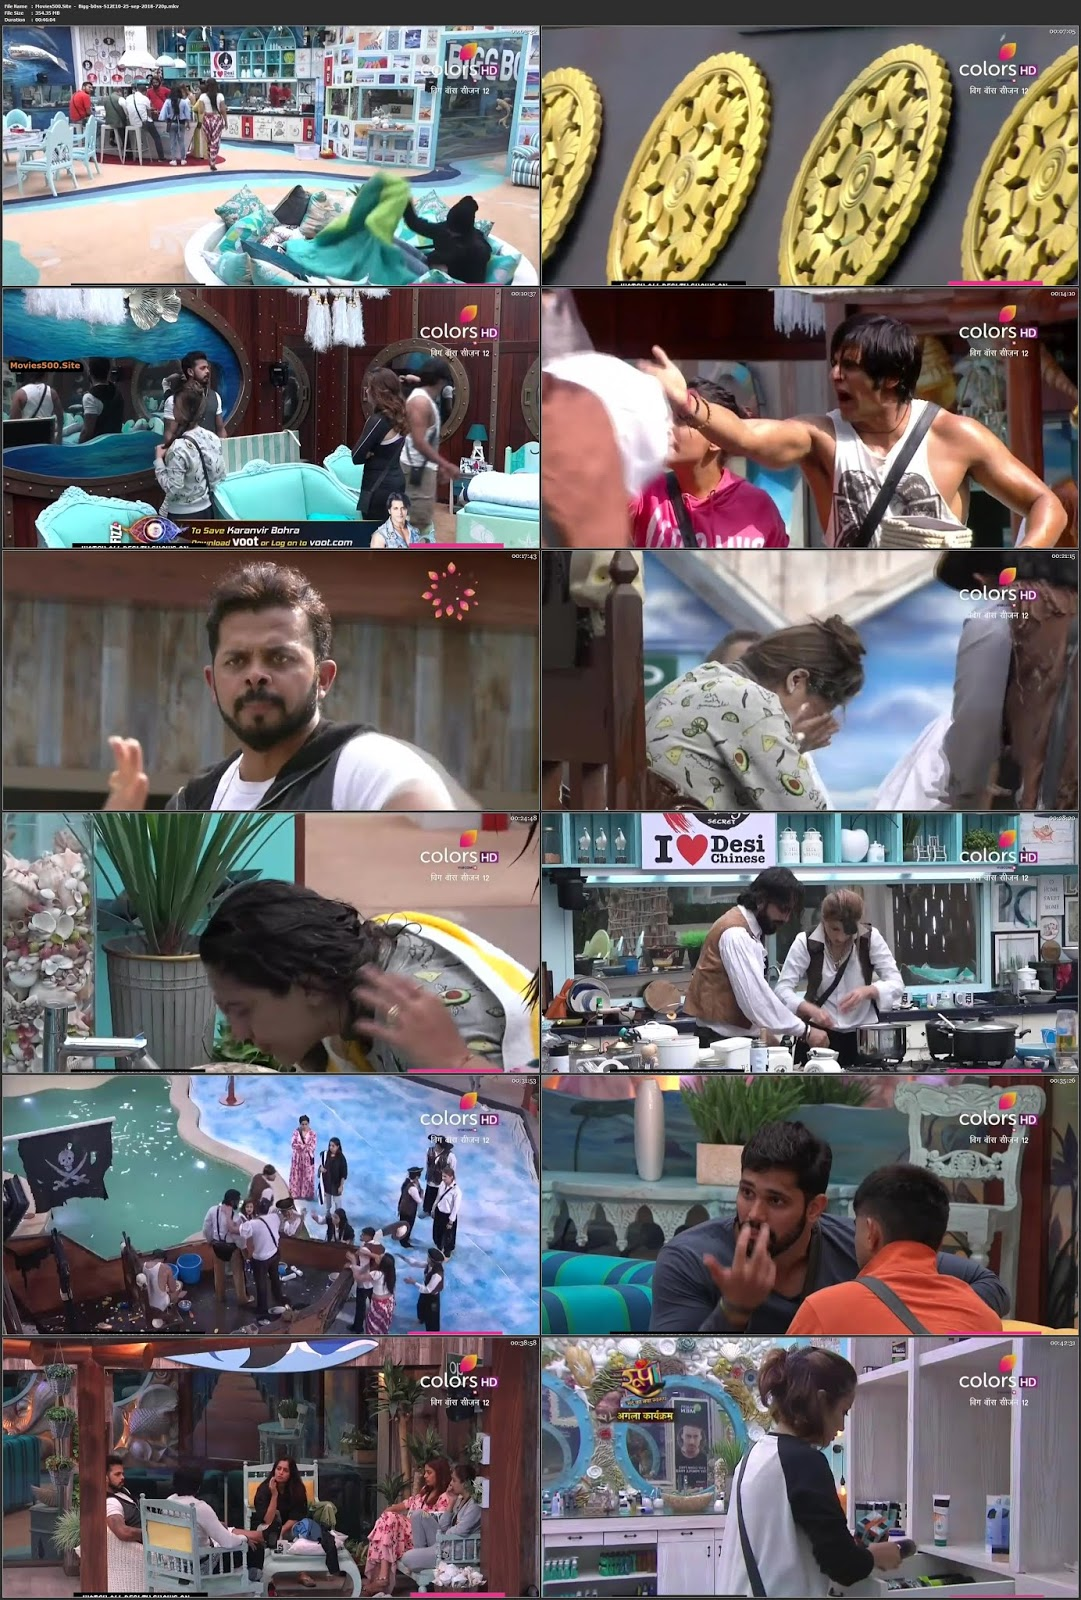 Bigg Boss Season 12 Episode 10 HDTV 25 September 2018 720p